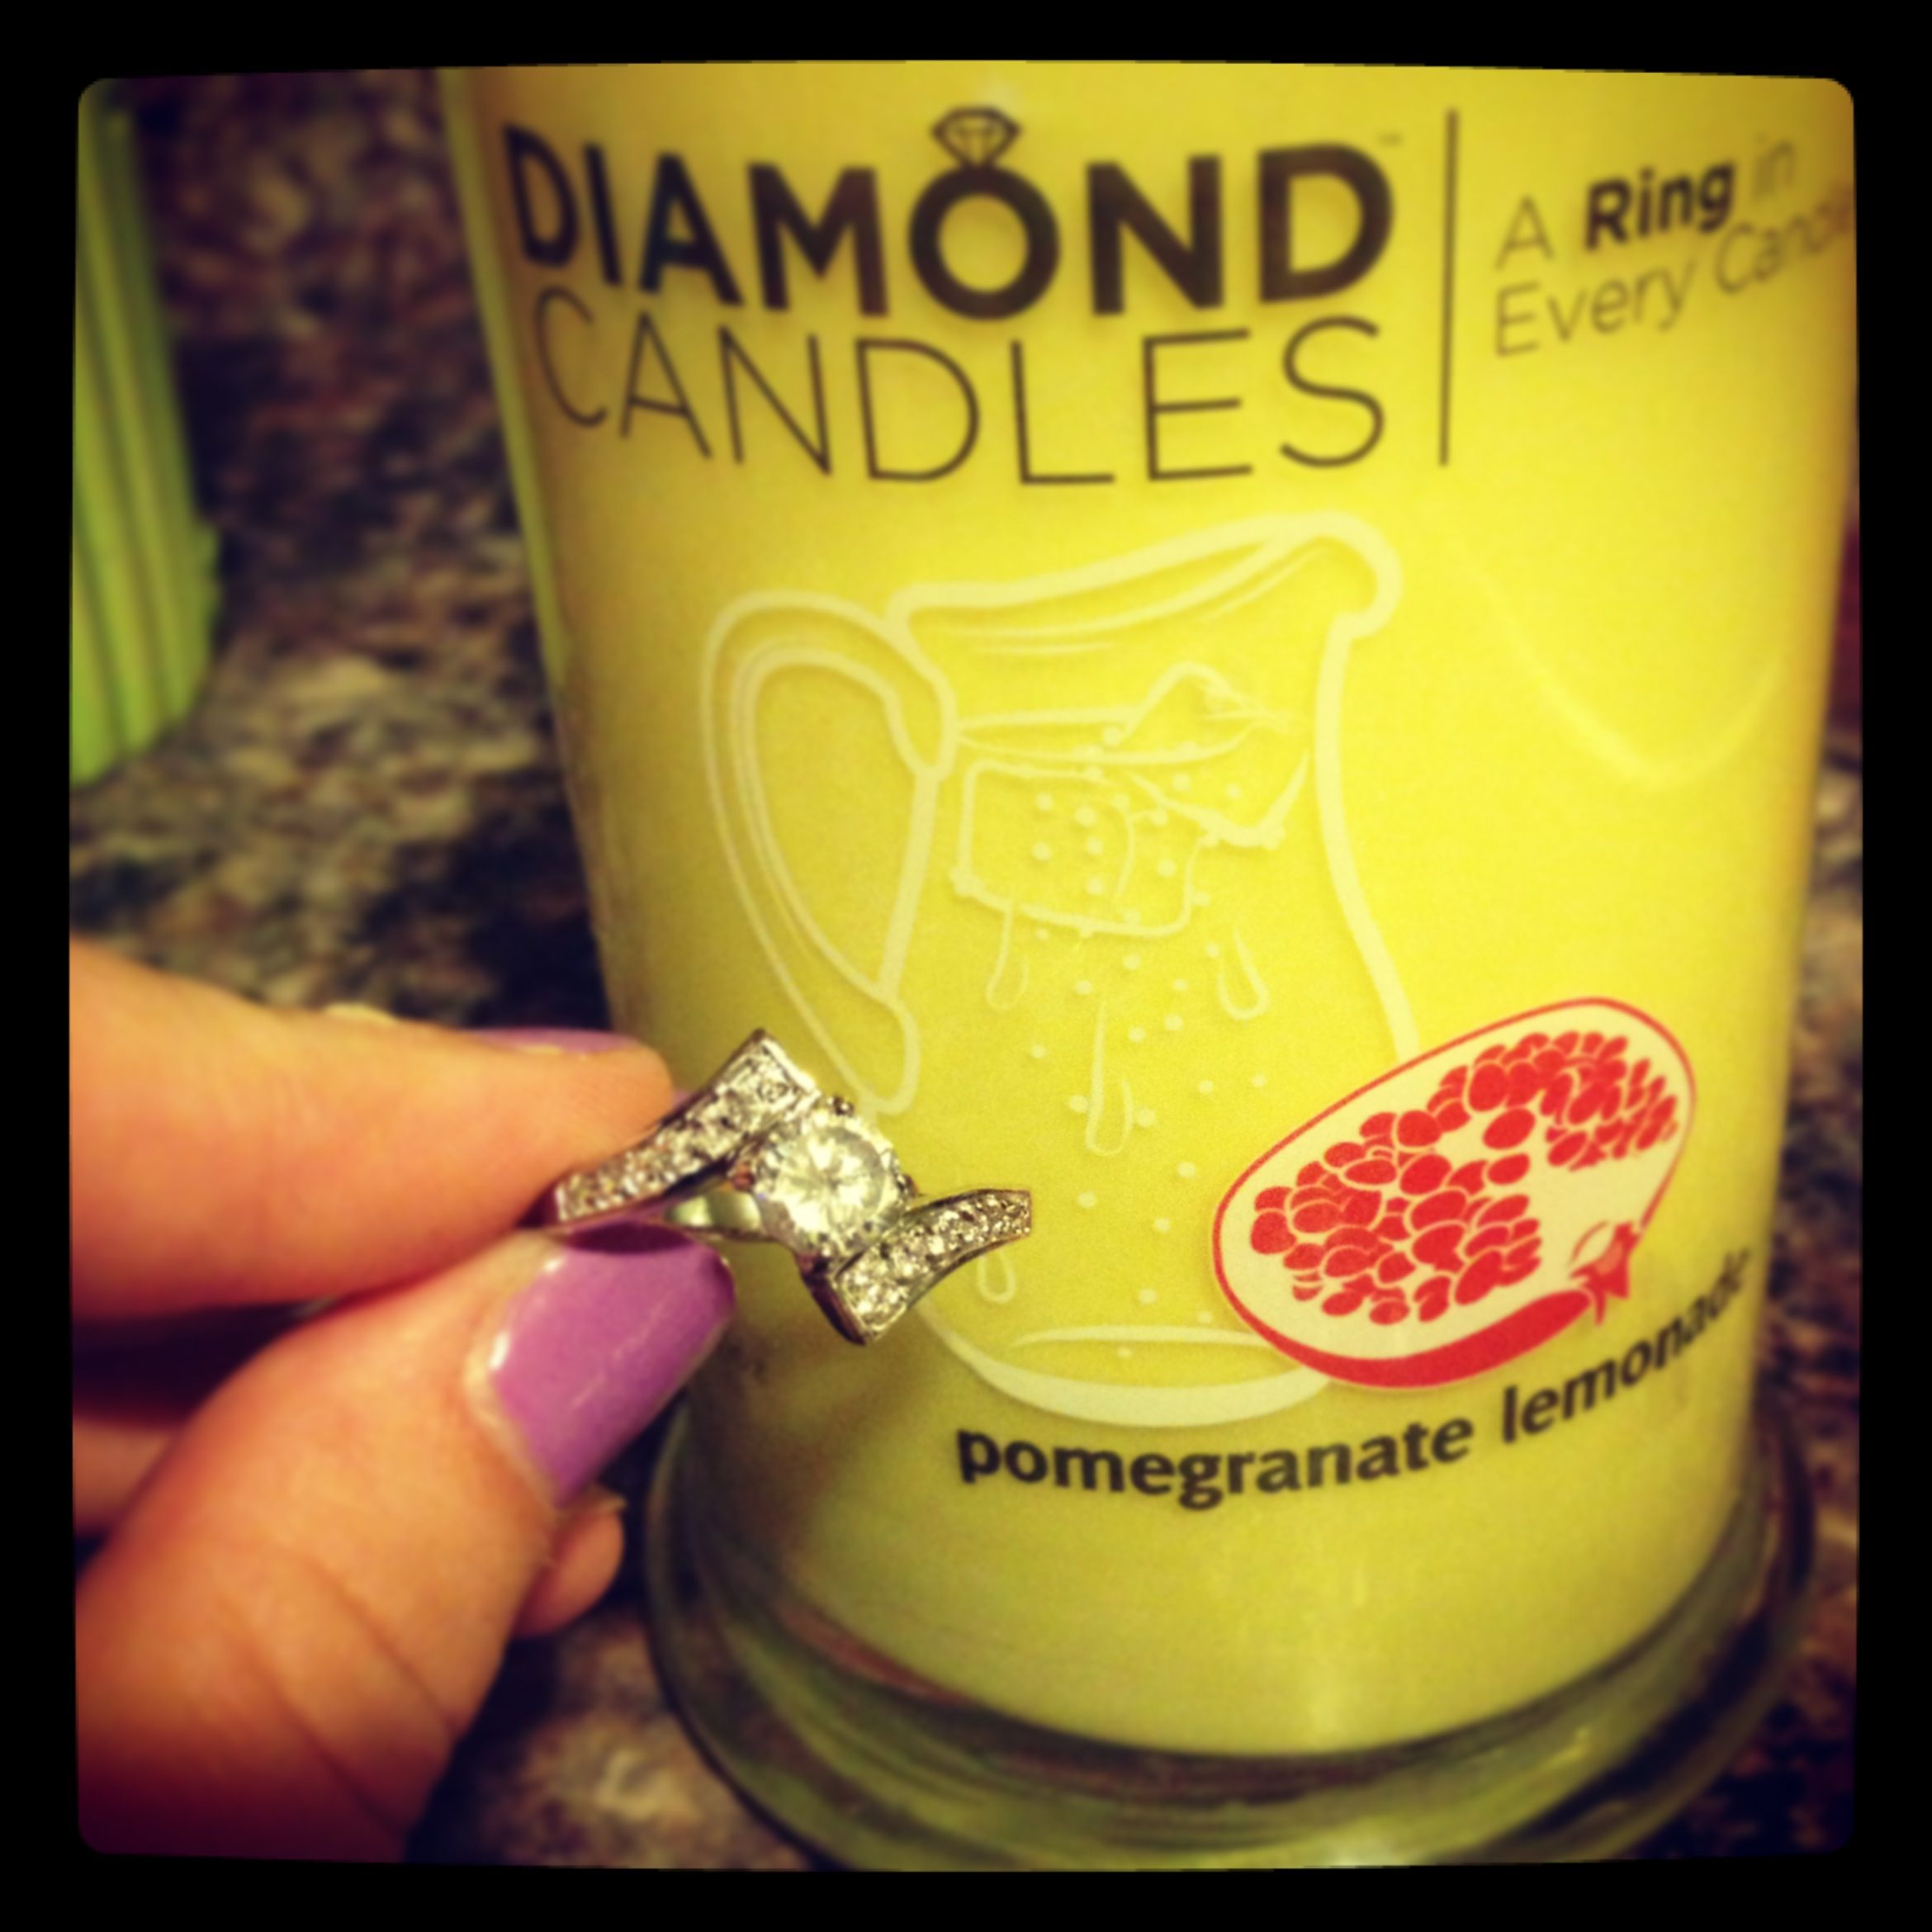 3rd Diamond Candle Won In The Diamond Candle Giveaway